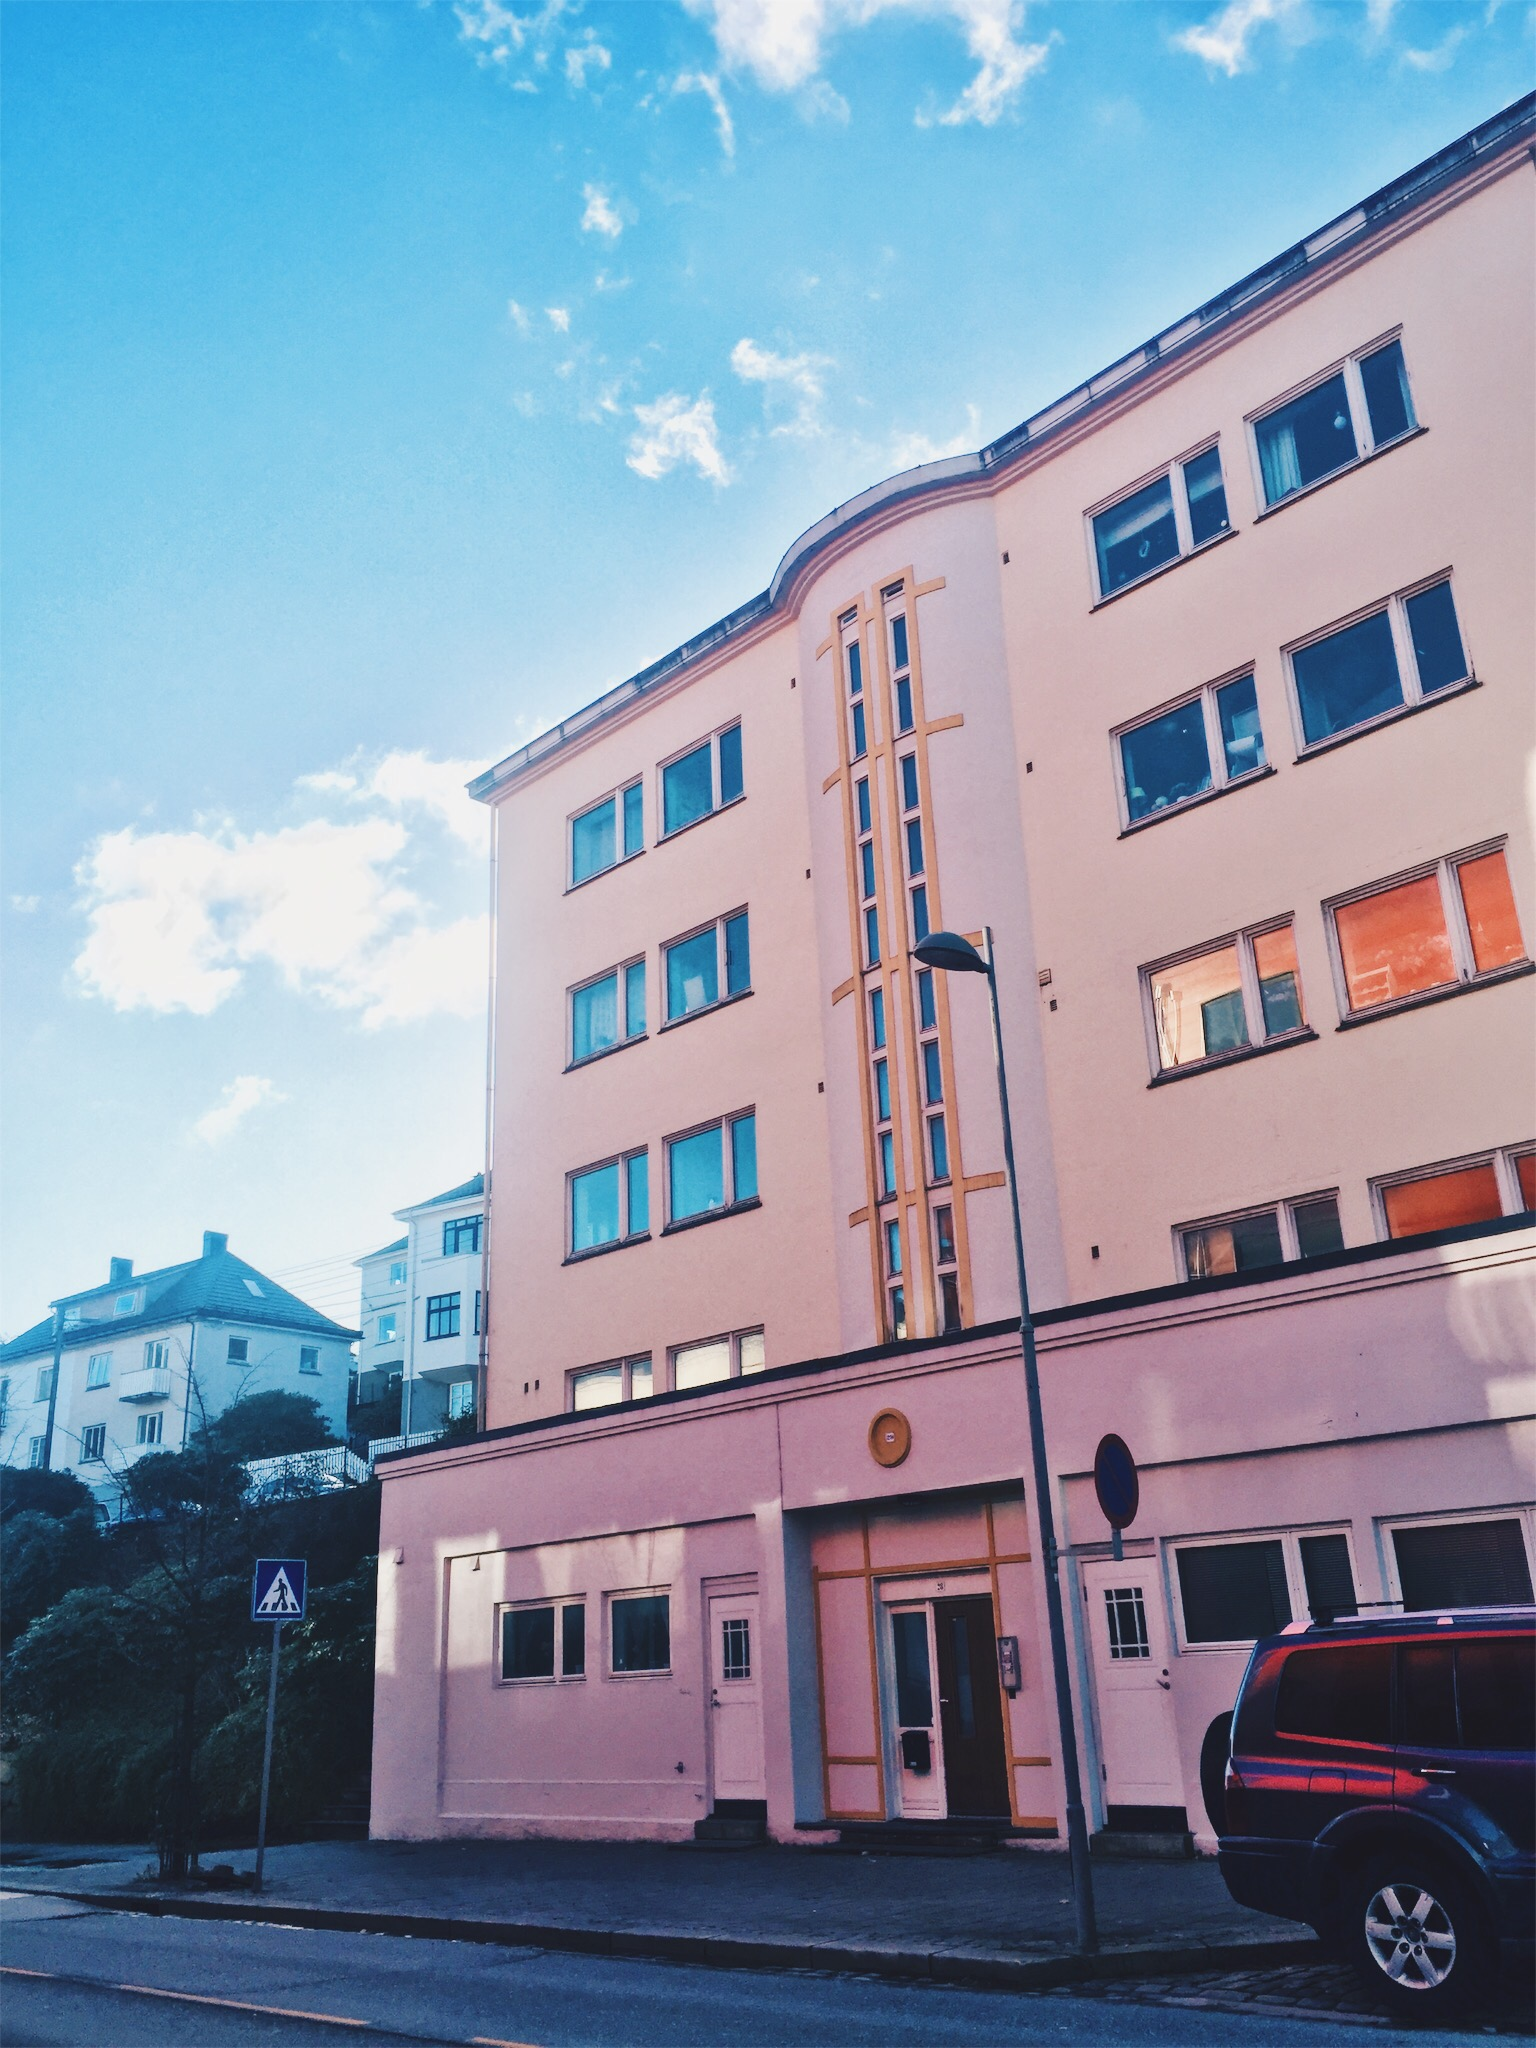 Can't believe I never noticed the pink building I am staring at every day while waiting for the bus....jpg